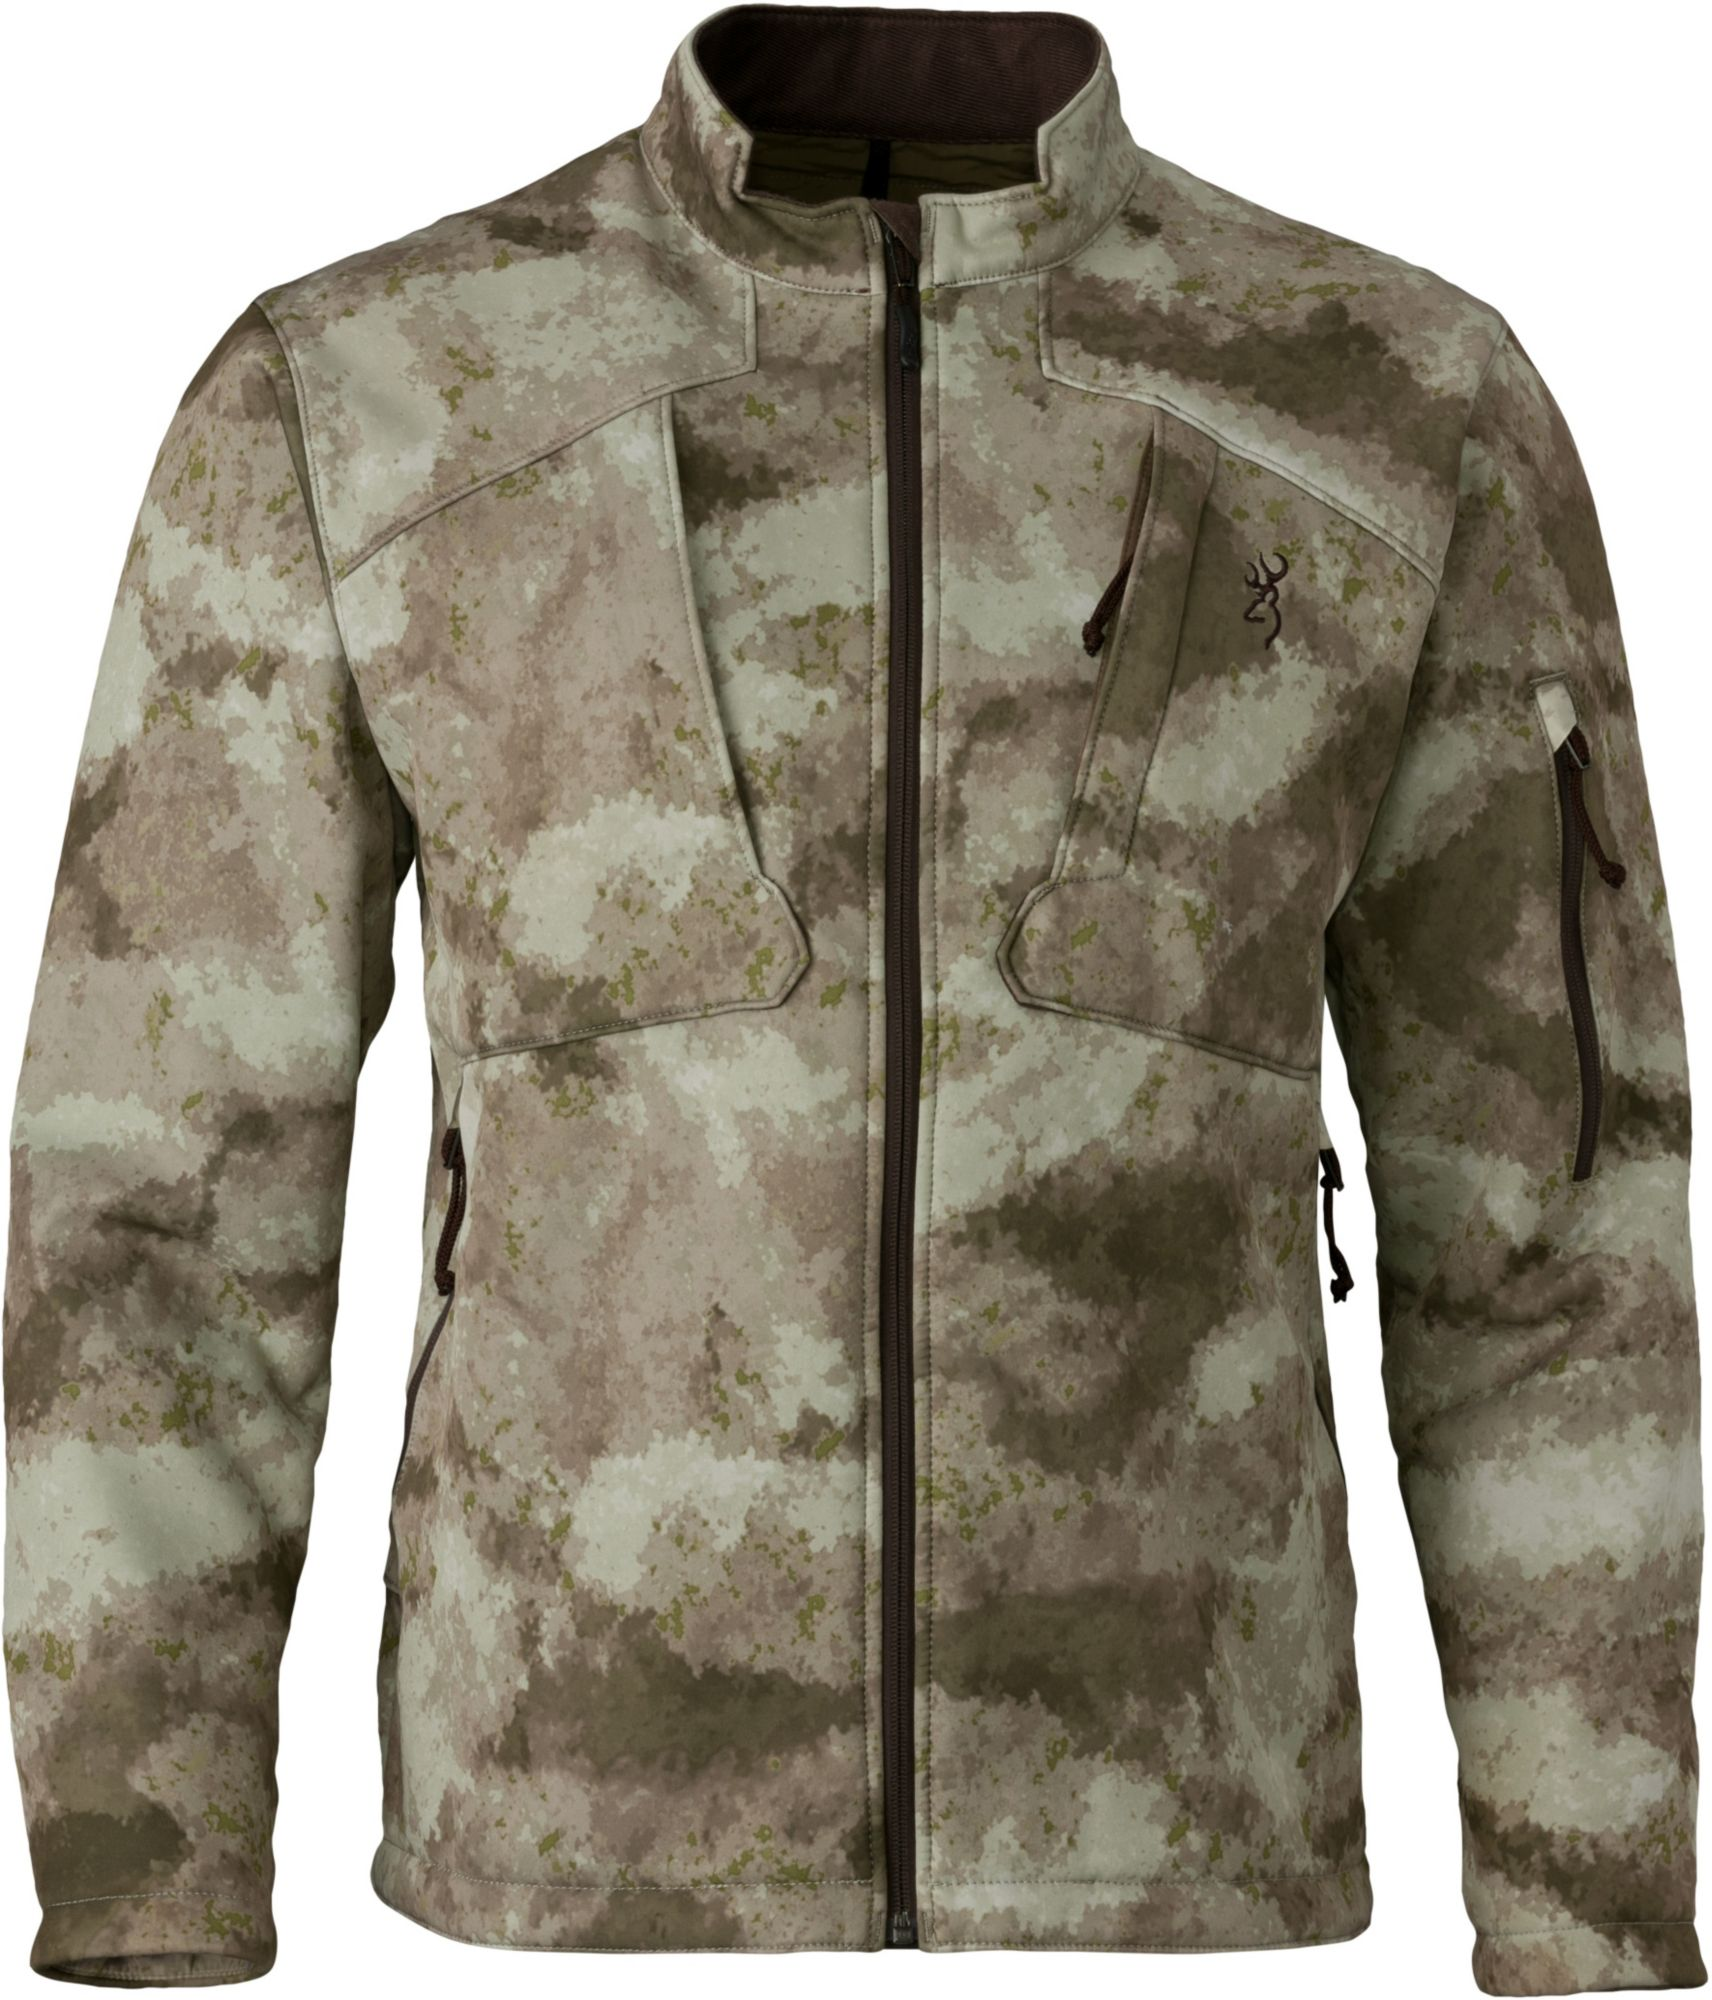 Browning Men's Hell's Canyon Speed Backcountry Hunting Jacket, Size: Medium, A Tacs Au Camo thumbnail